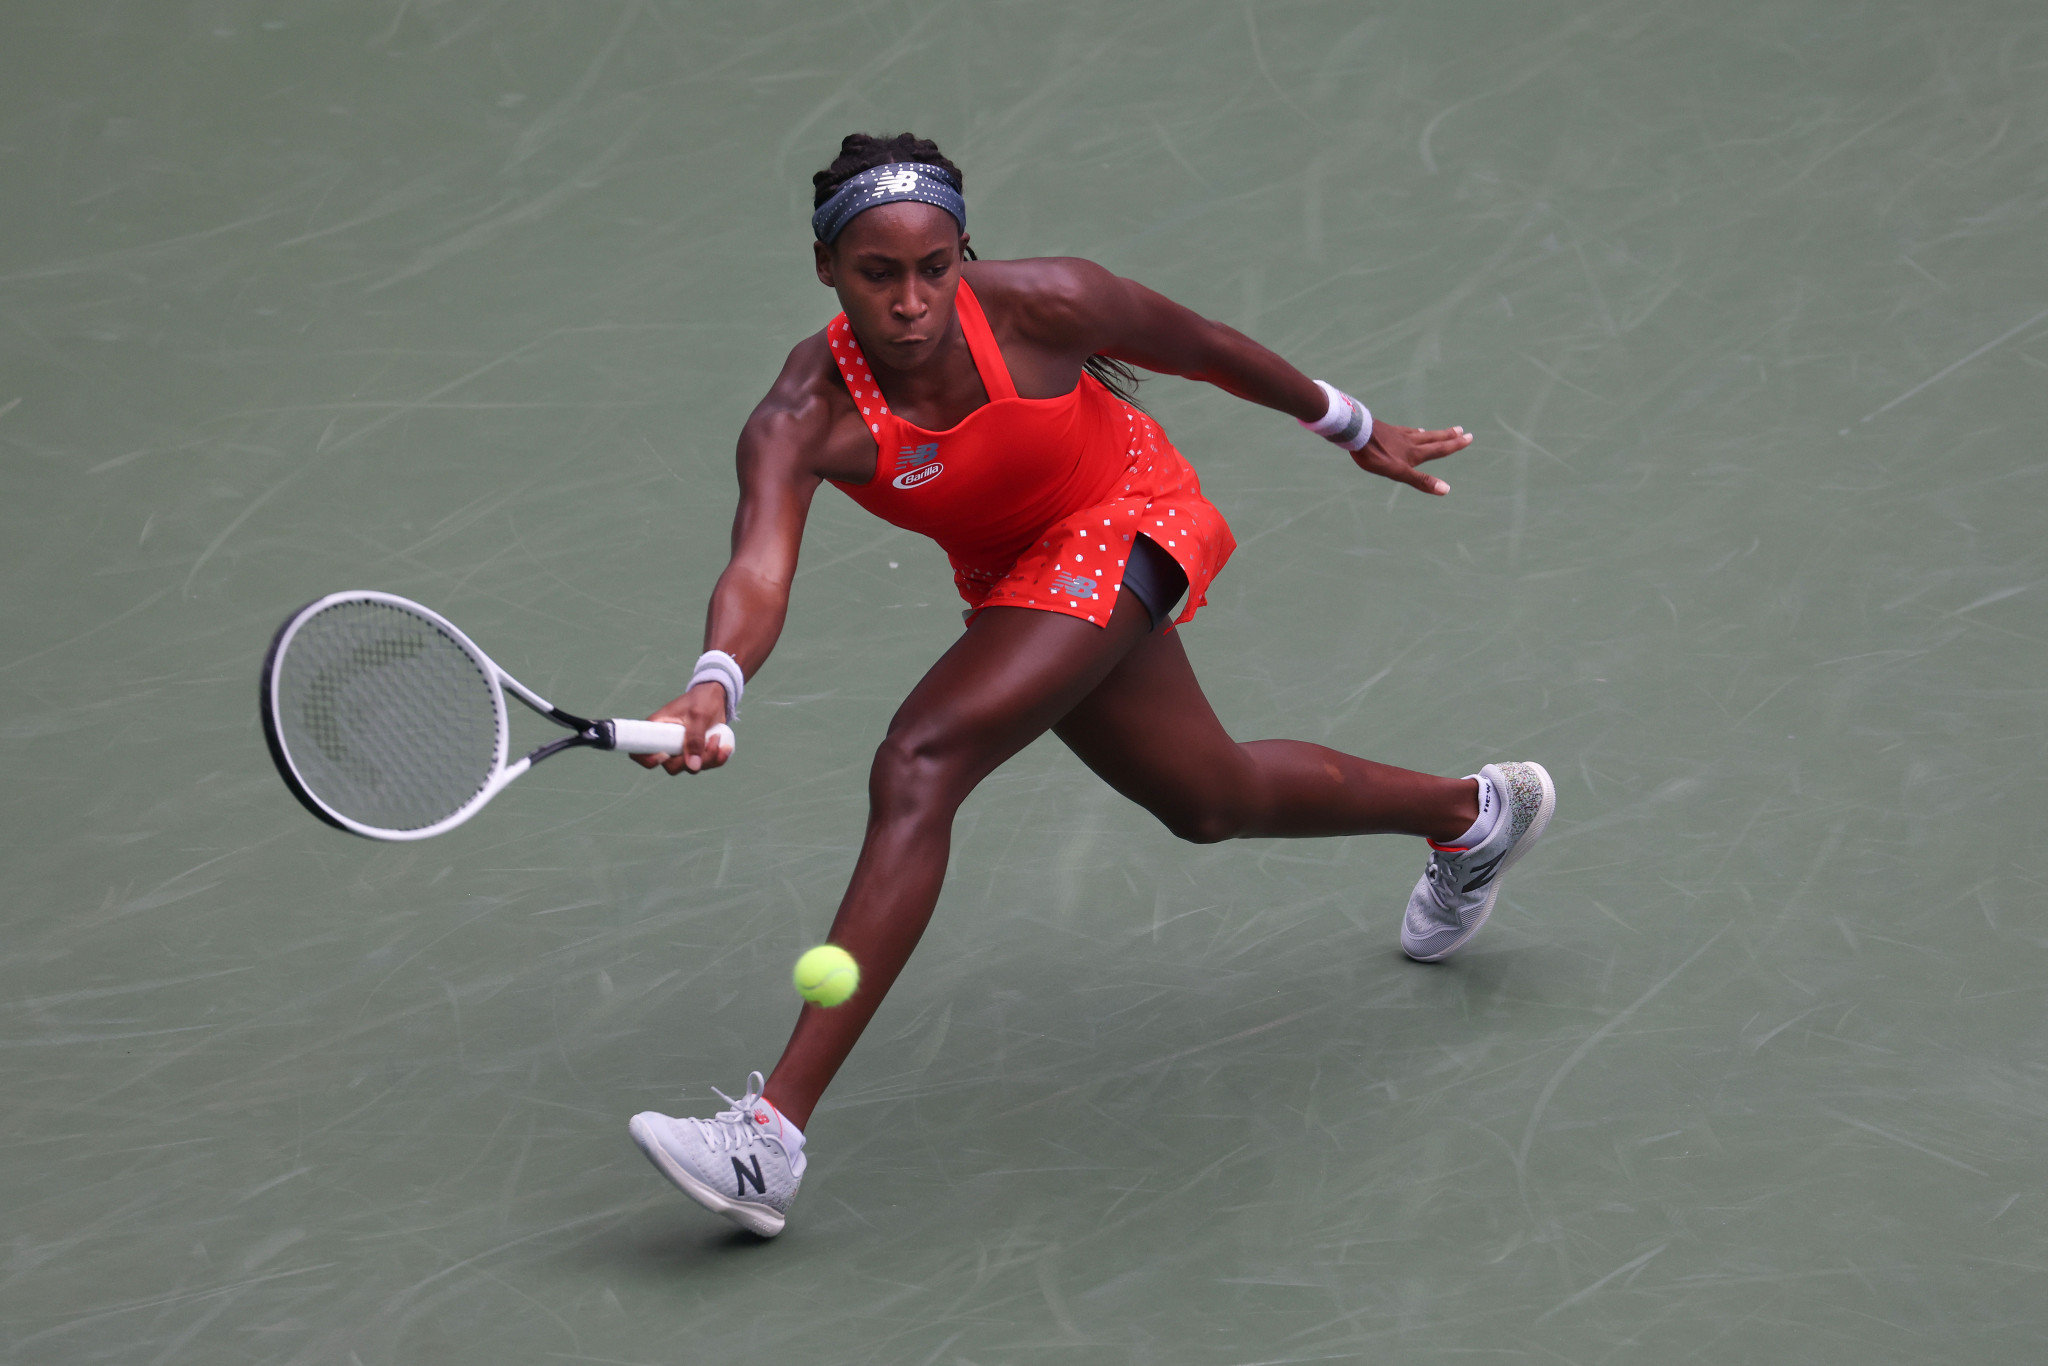 Gauff aiming for Tokyo 2020 qualification after postponement boosted chances